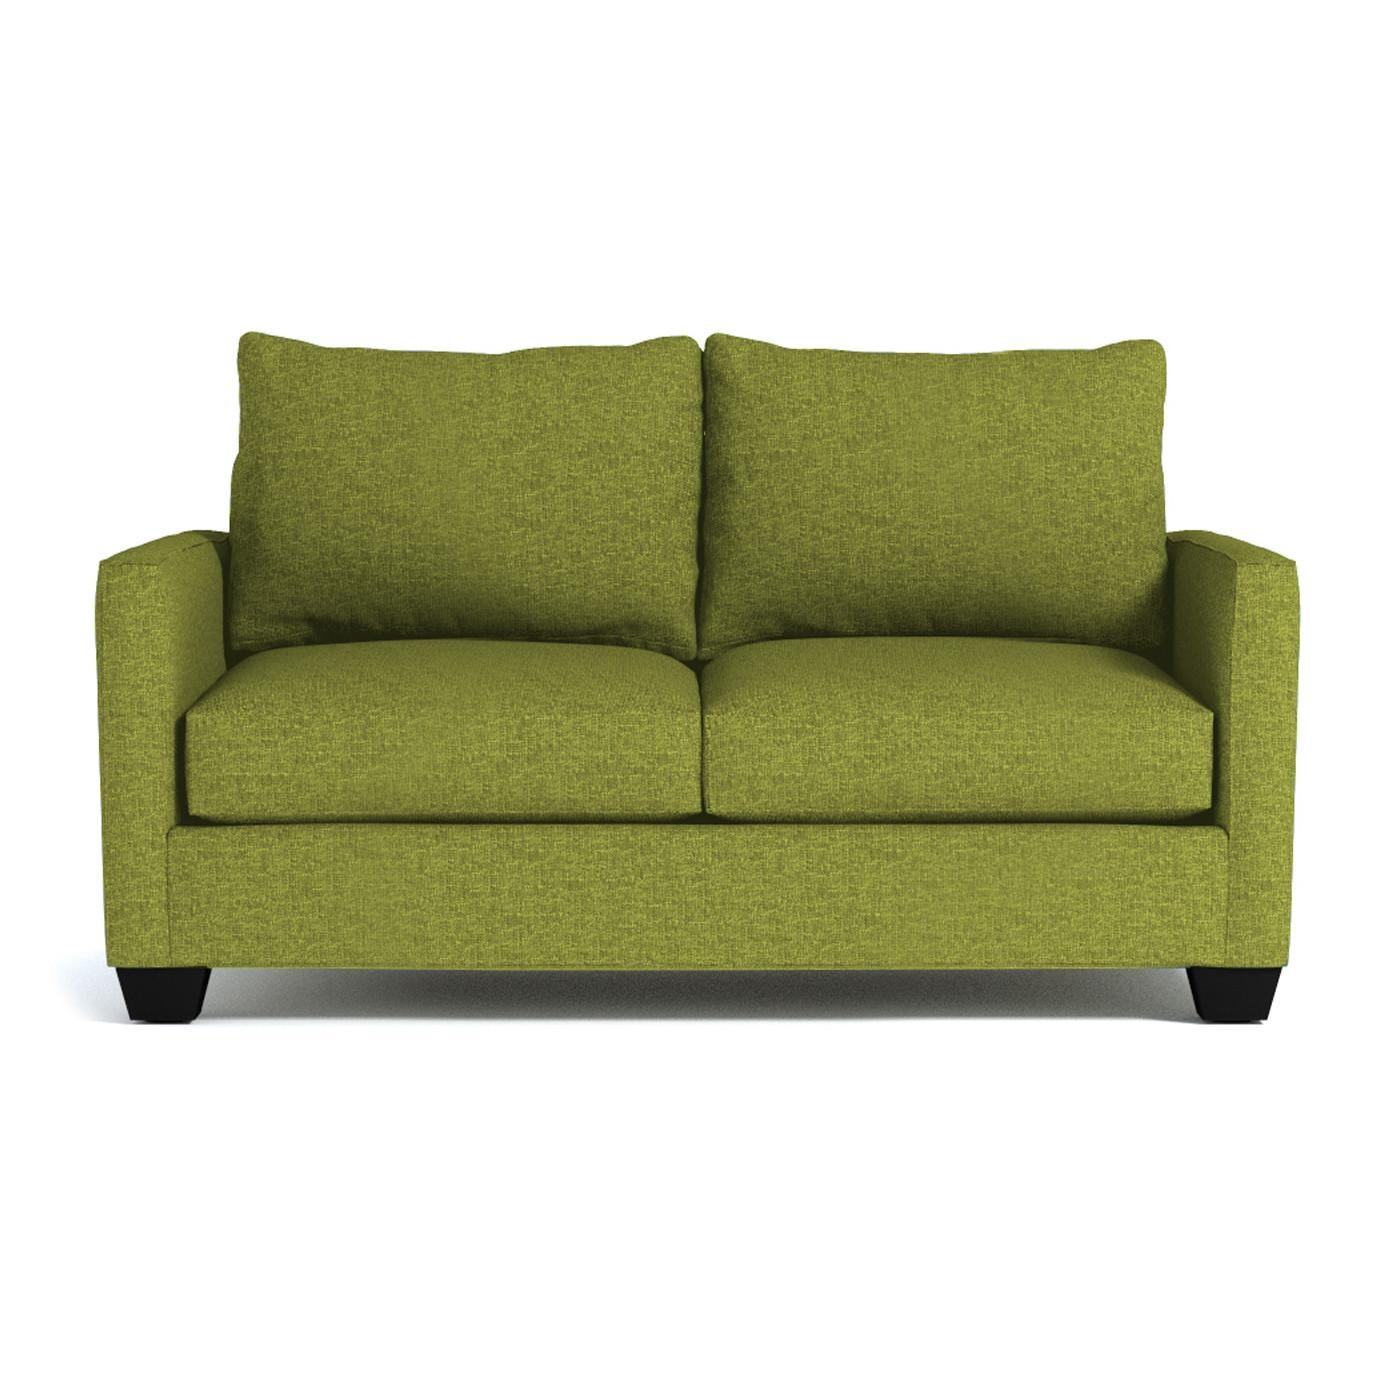 15 Collection Of Apartment Size Sofas And Sectionals